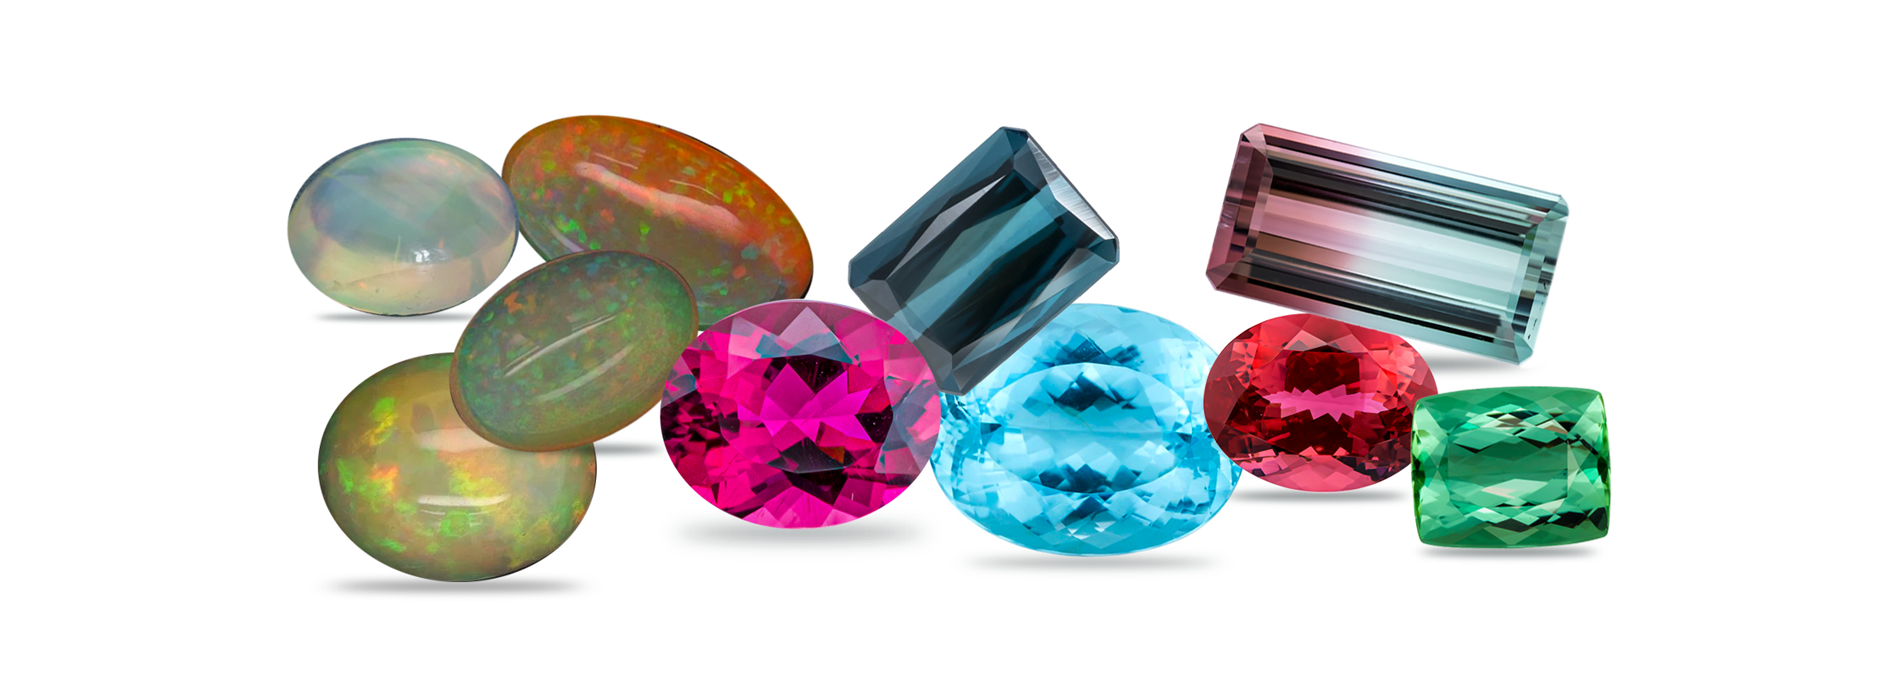 Individuals born in October get to choose between two birthstones — tourmaline and opal